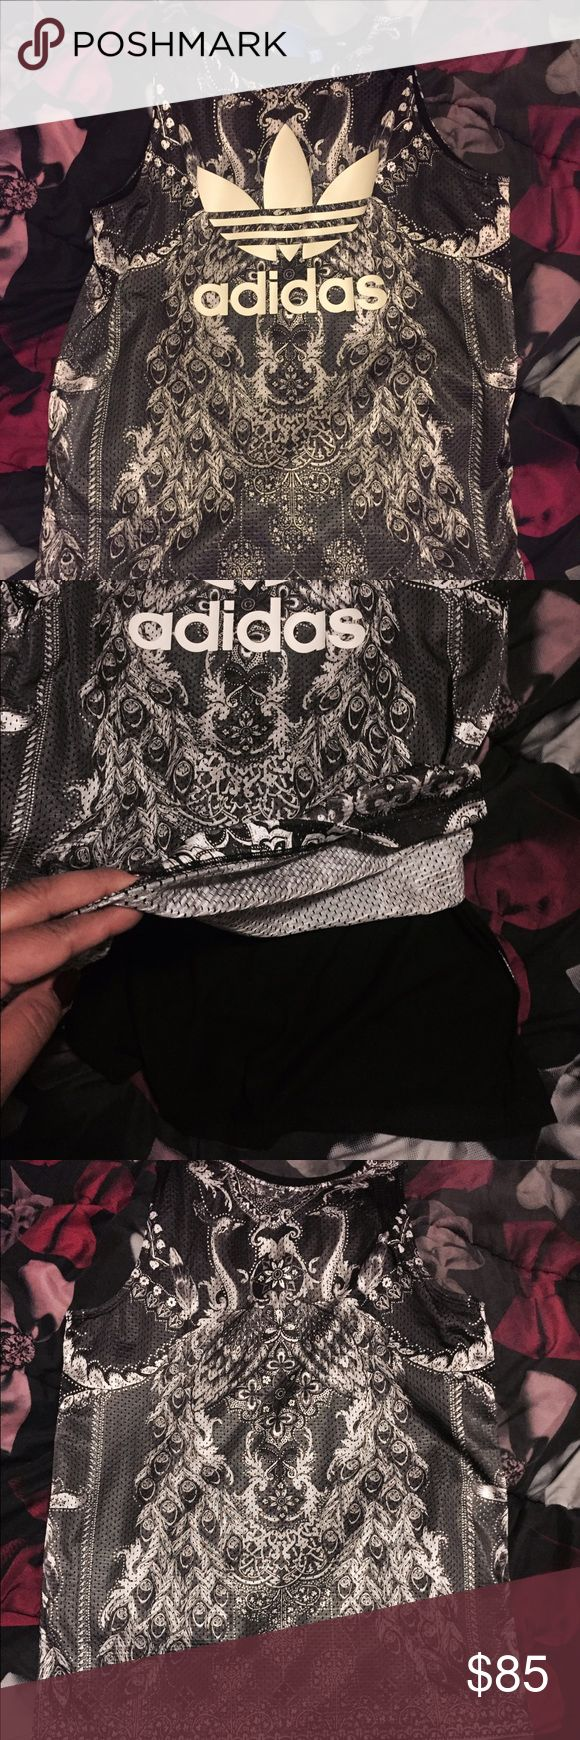 Adidas Originals Dress, can be long tee also BRAND NEW with tags, never worn, GORGEOUS design, Originals Brand Women's, Size Small, Tag says dress but it could be used as an oversized/ long tee Adidas Tops Tees - Short Sleeve